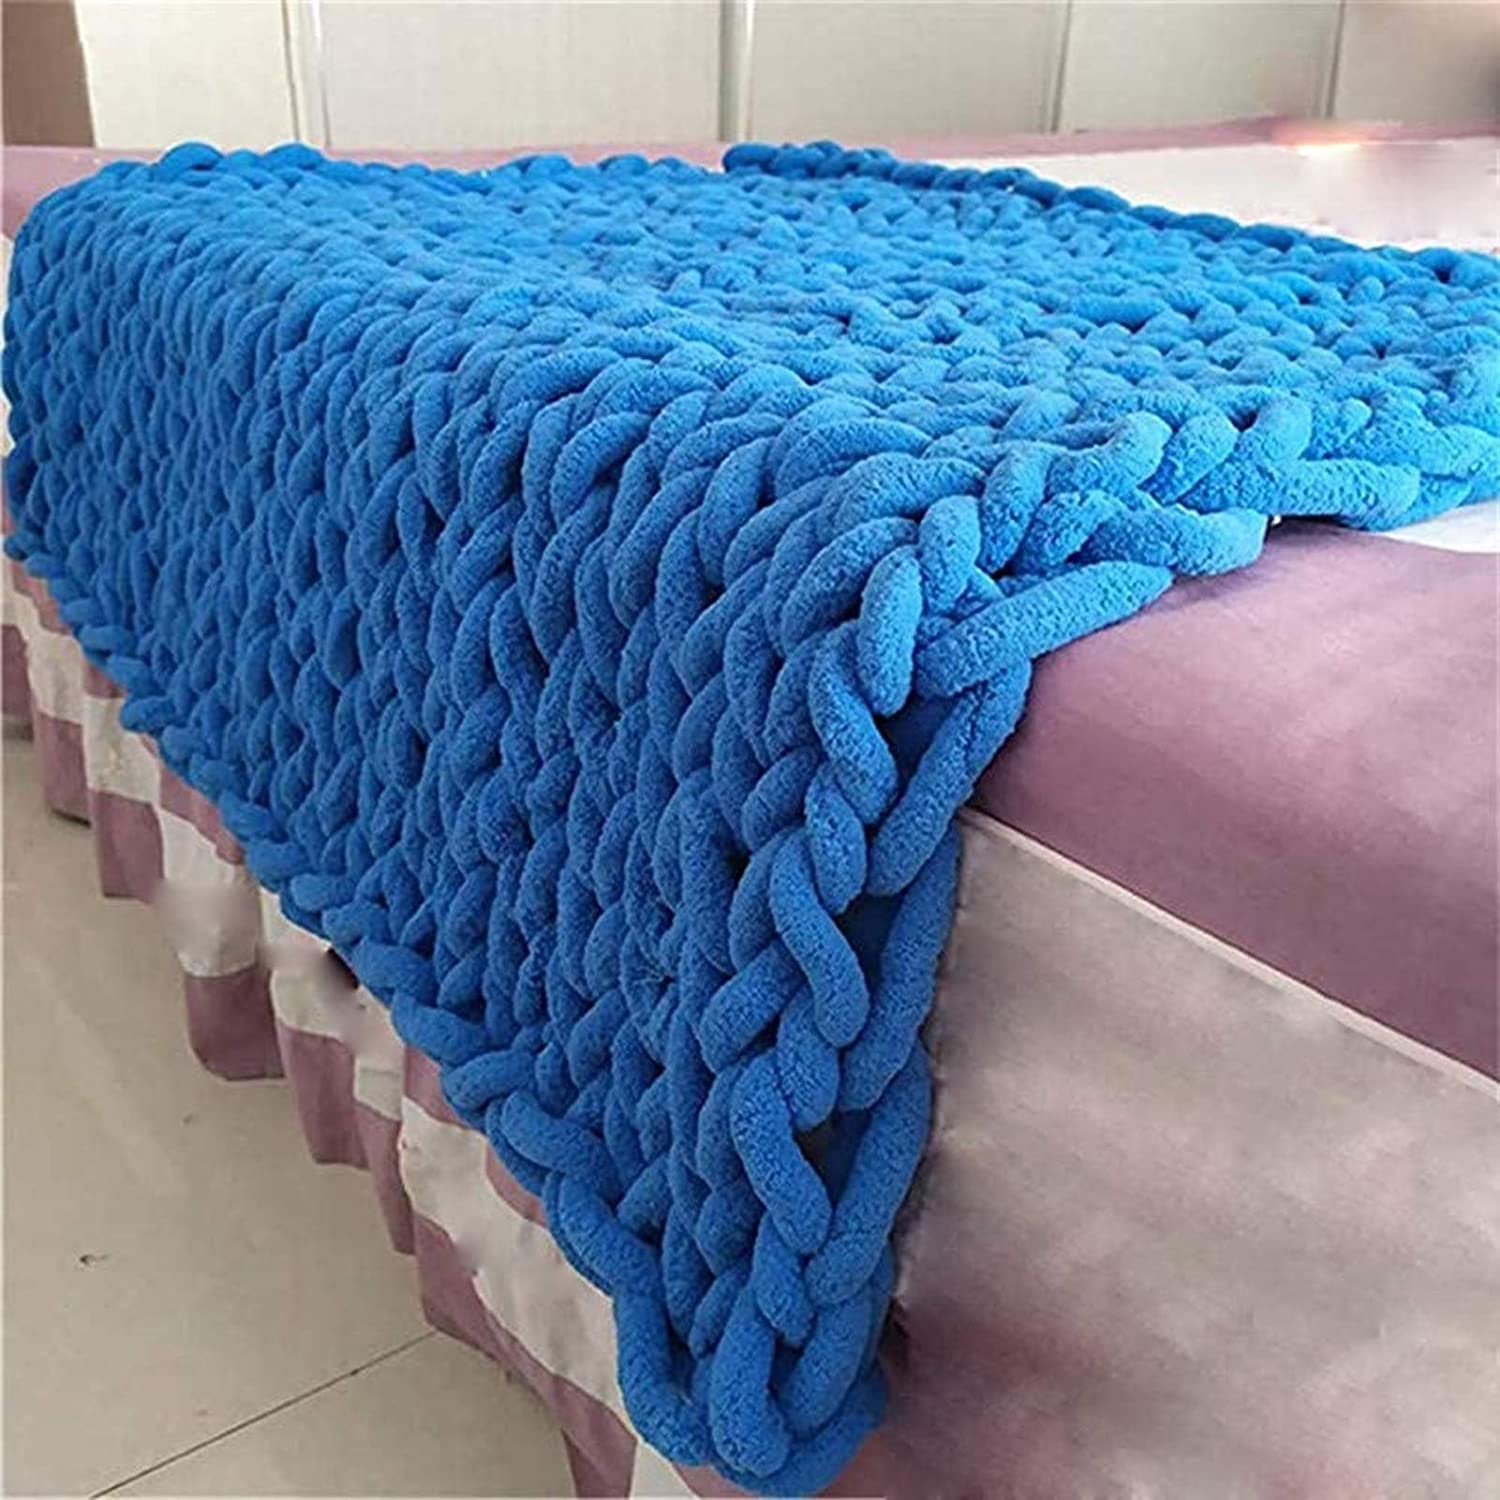 YXYH Chunky Knit Blanket Soldering Chenille Throws Decor Indefinitely Home Lux Blankets